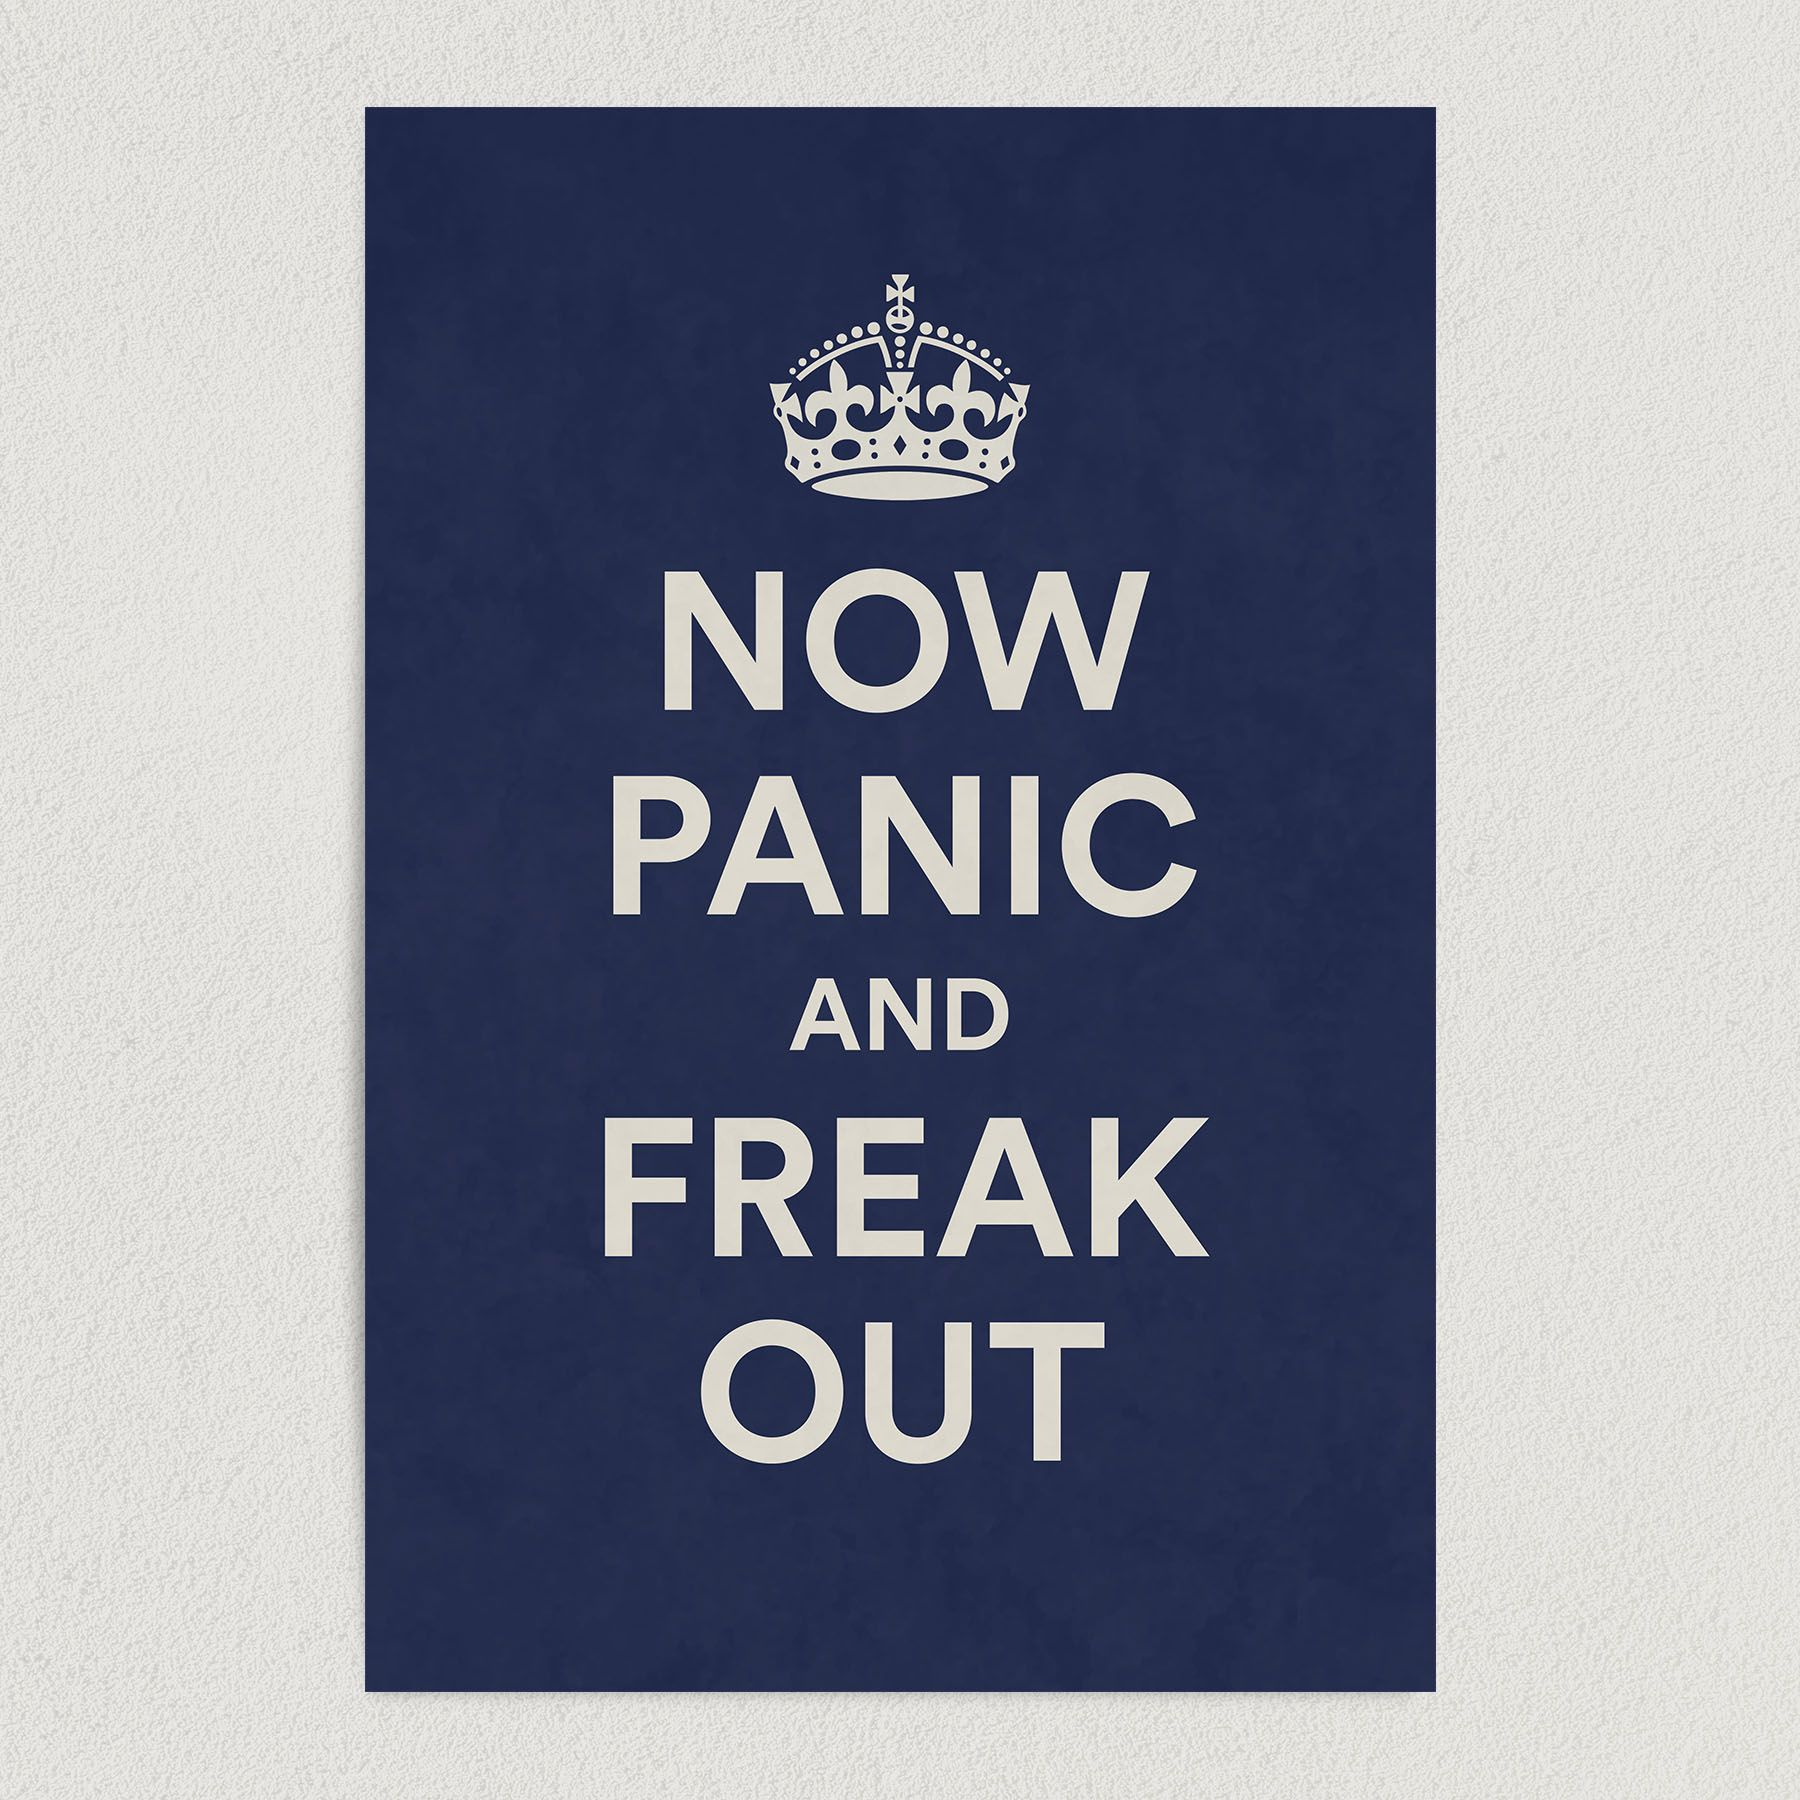 Now Panic and Freak Out Art Print Poster 12″ x 18″ Wall Art AH3185